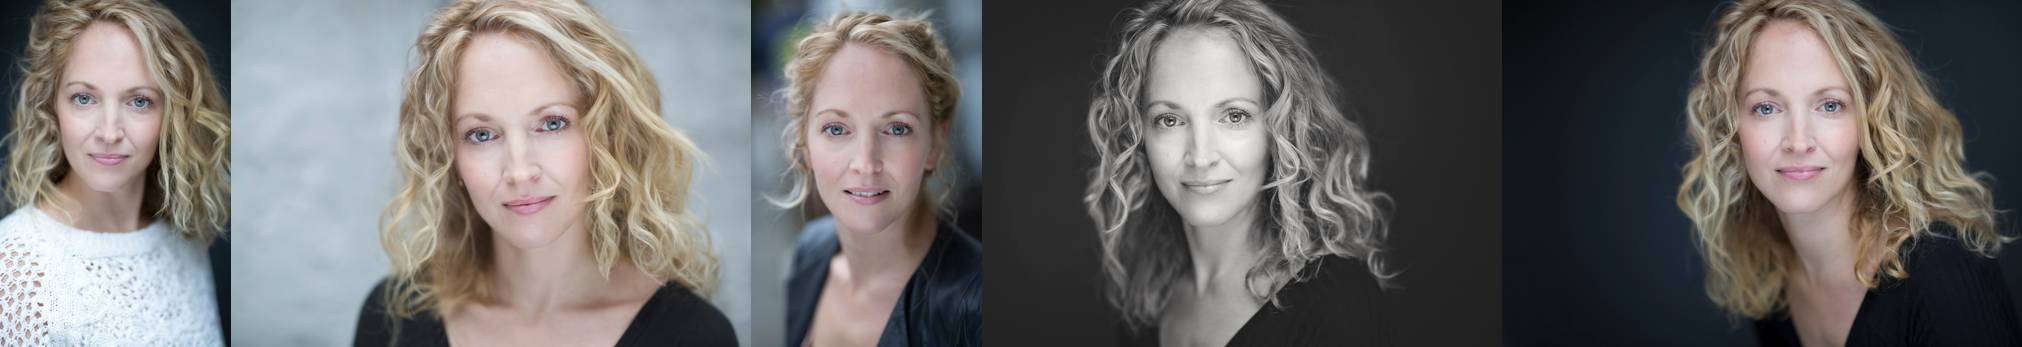 emma bullivant photography actors headshots london corporate portraits headshoteb2636